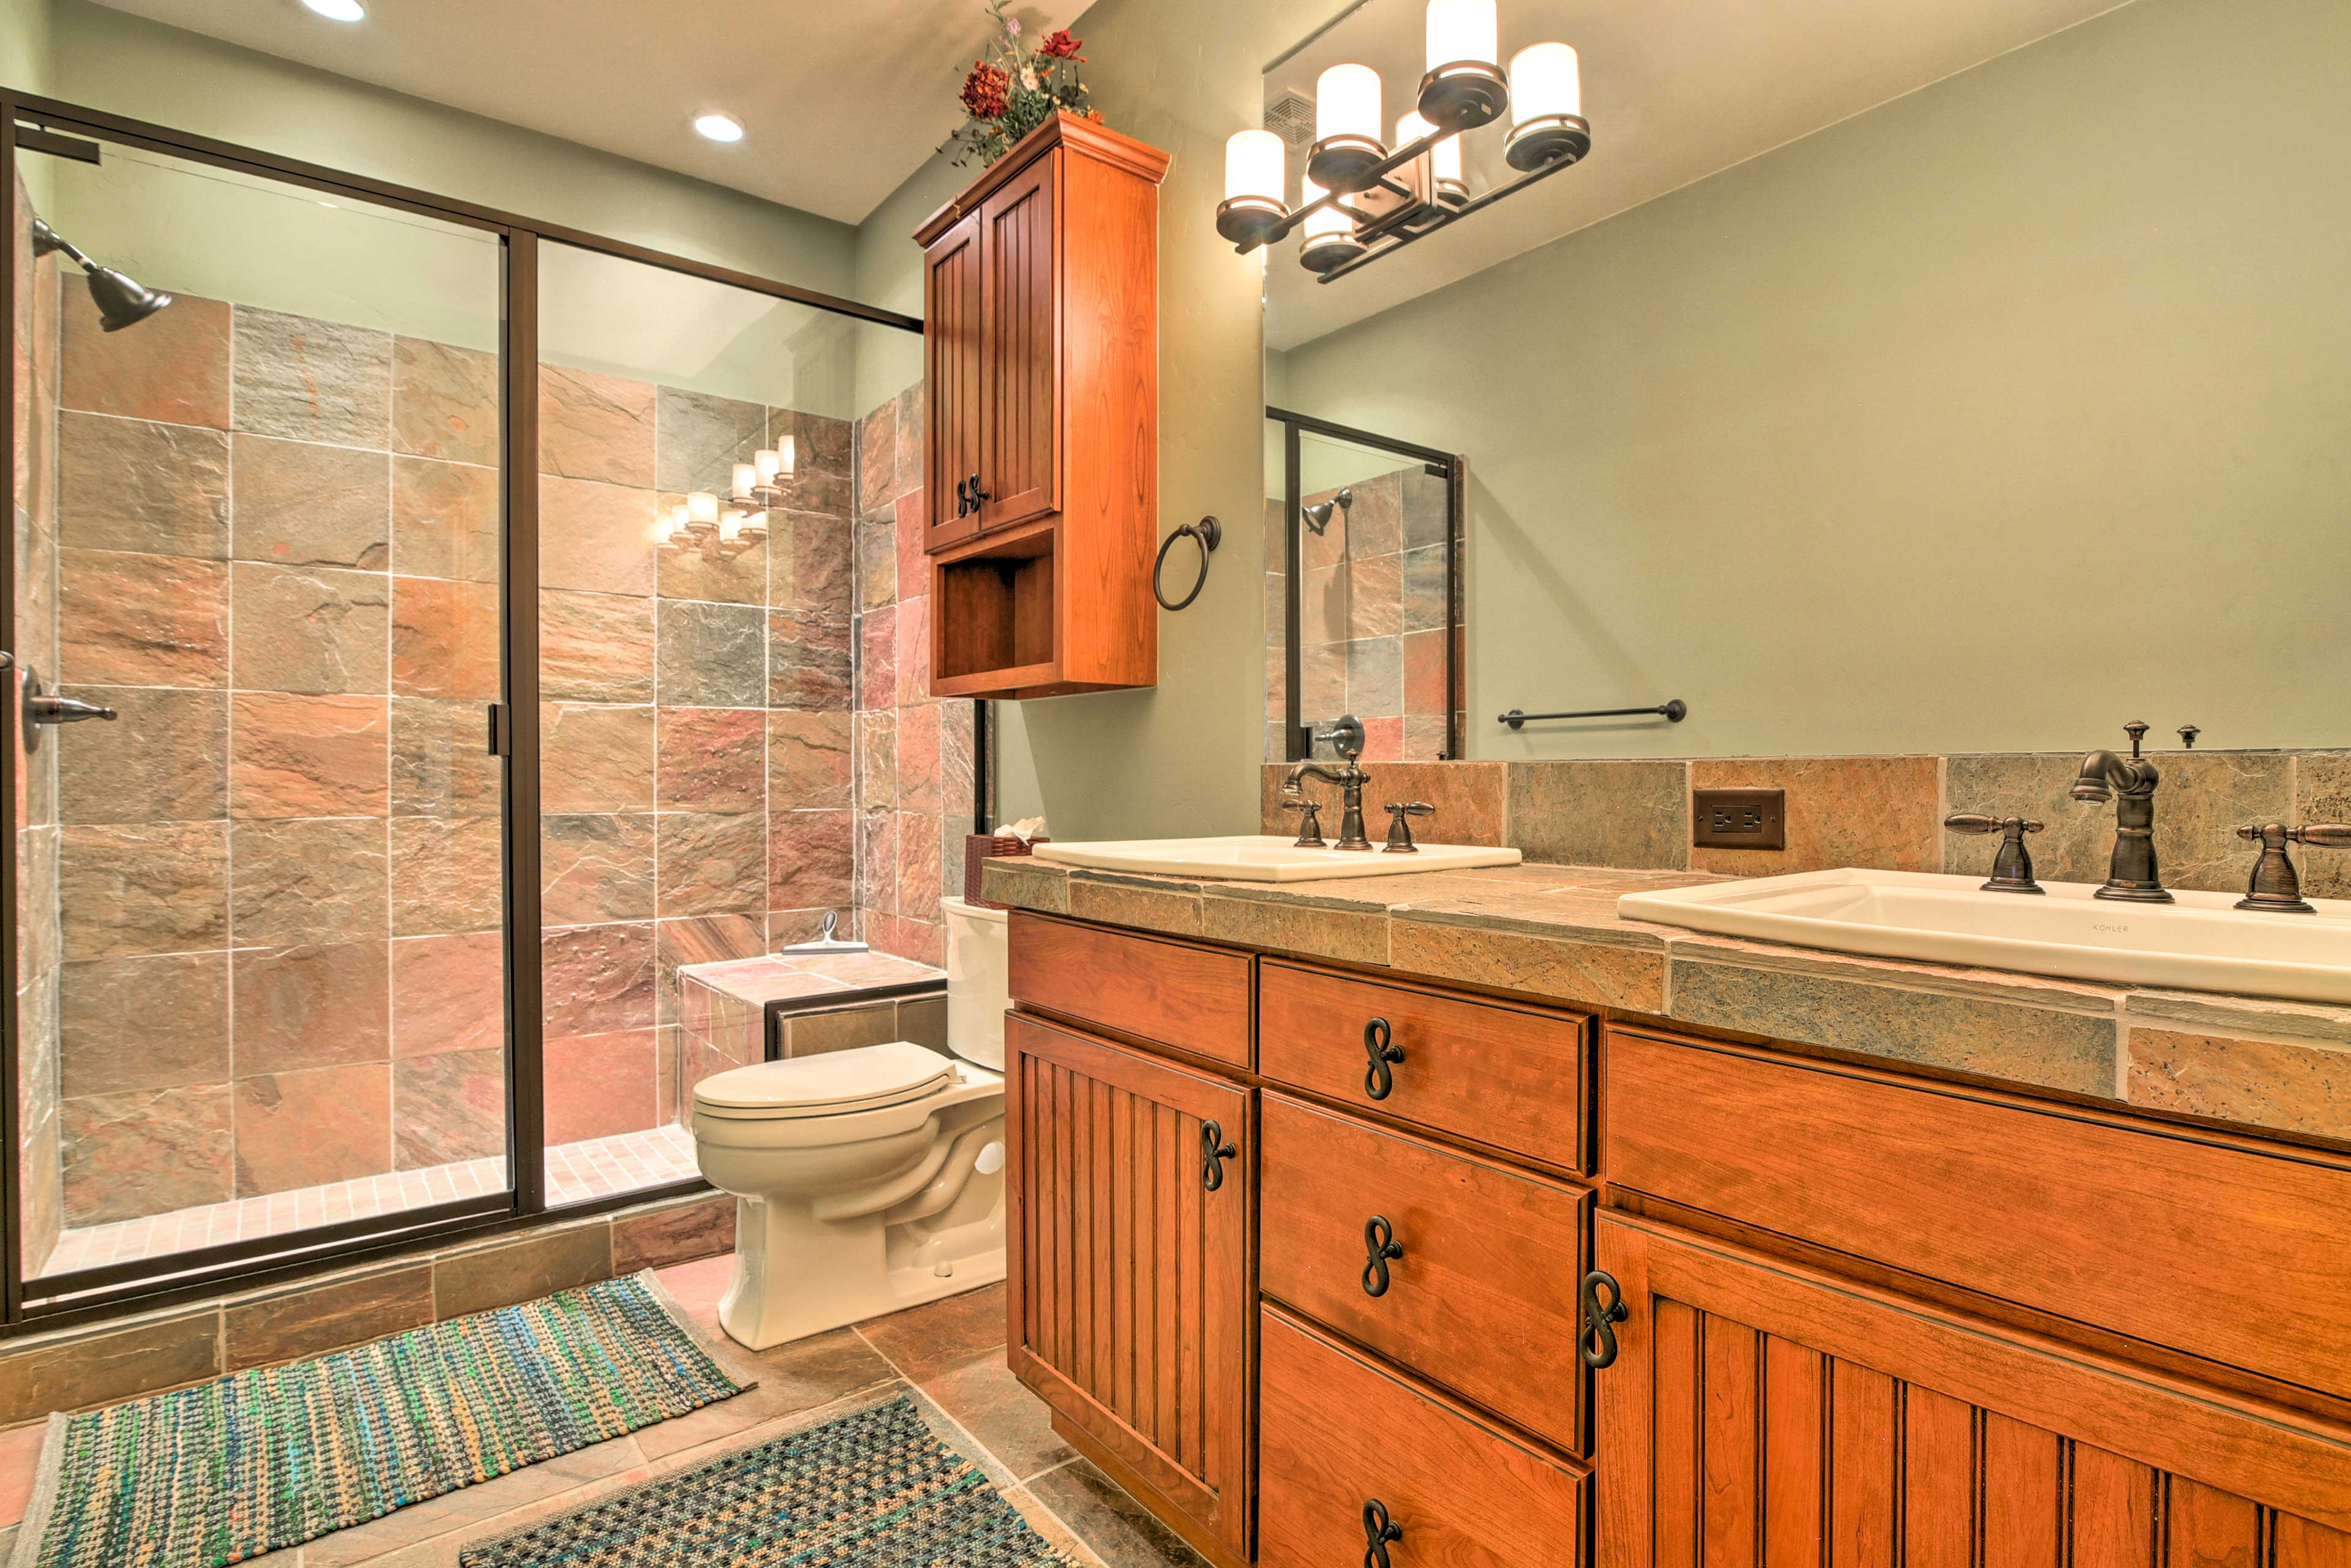 With 6 bathrooms, everyone will have plenty of space to freshen up.